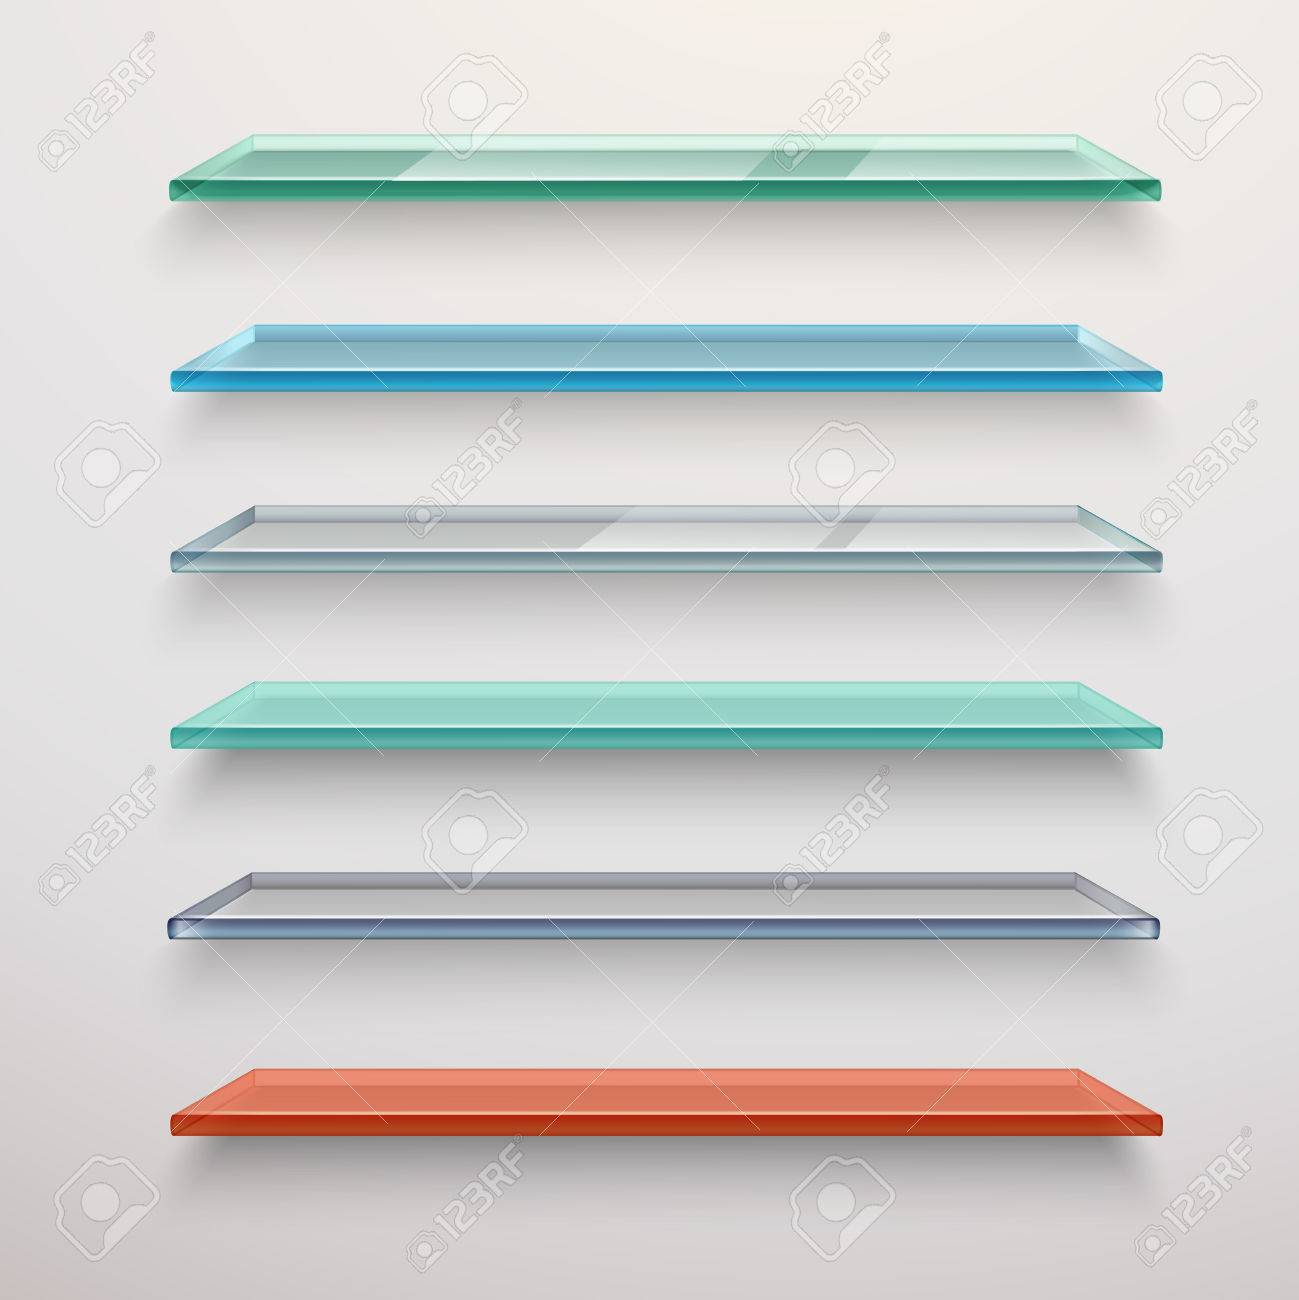 Realistic Colored Transparent Glass Wall Shelves Set Isolated ...